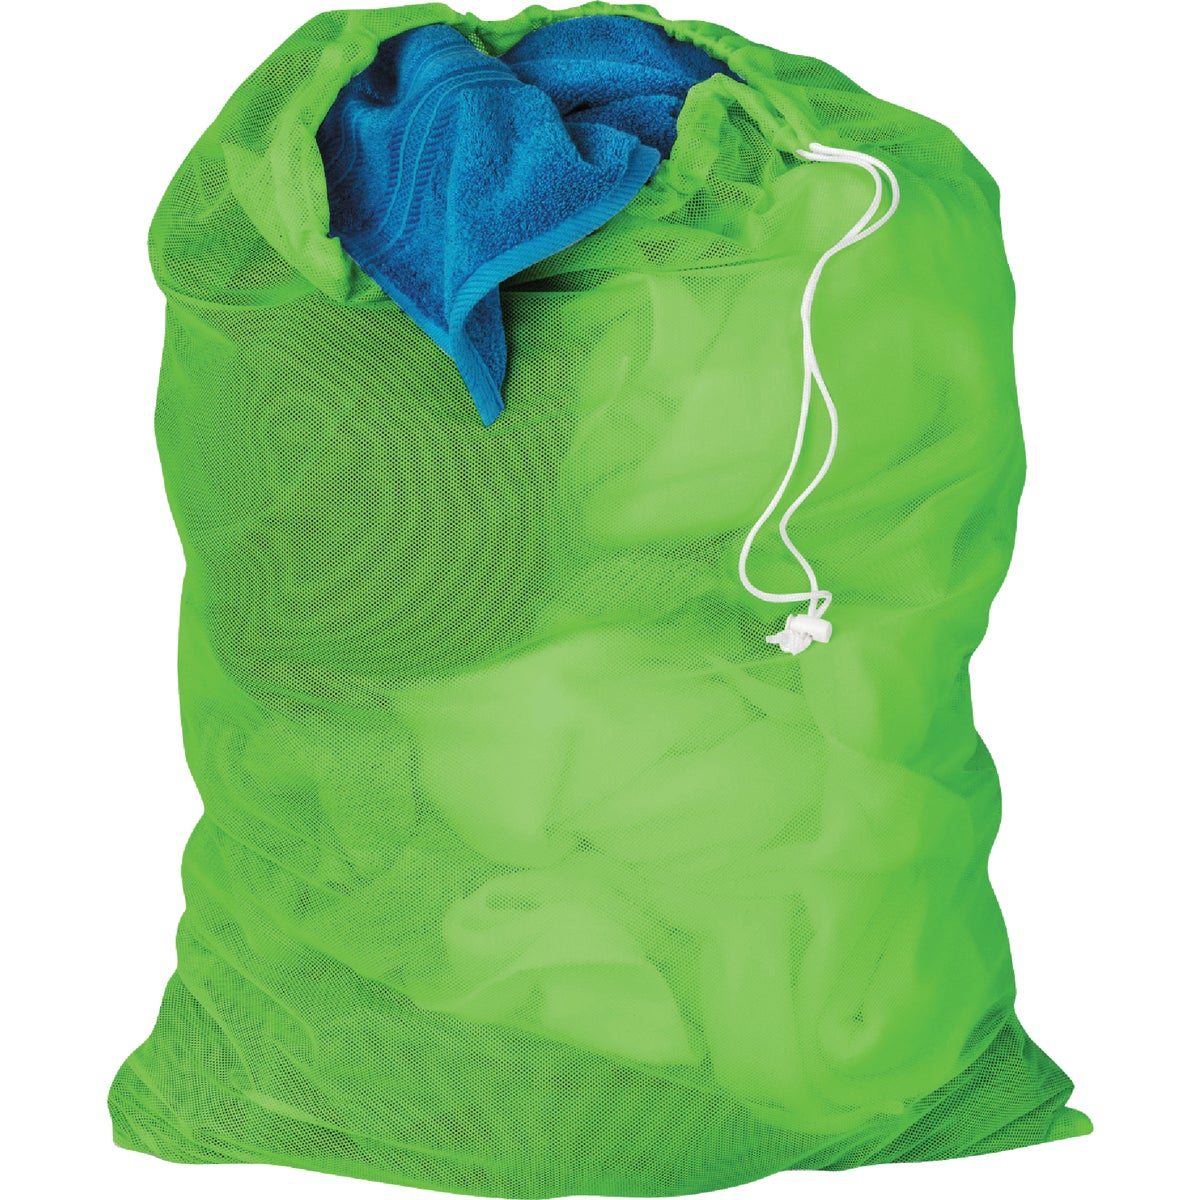 LM GRN MESH LAUNDRY BAG